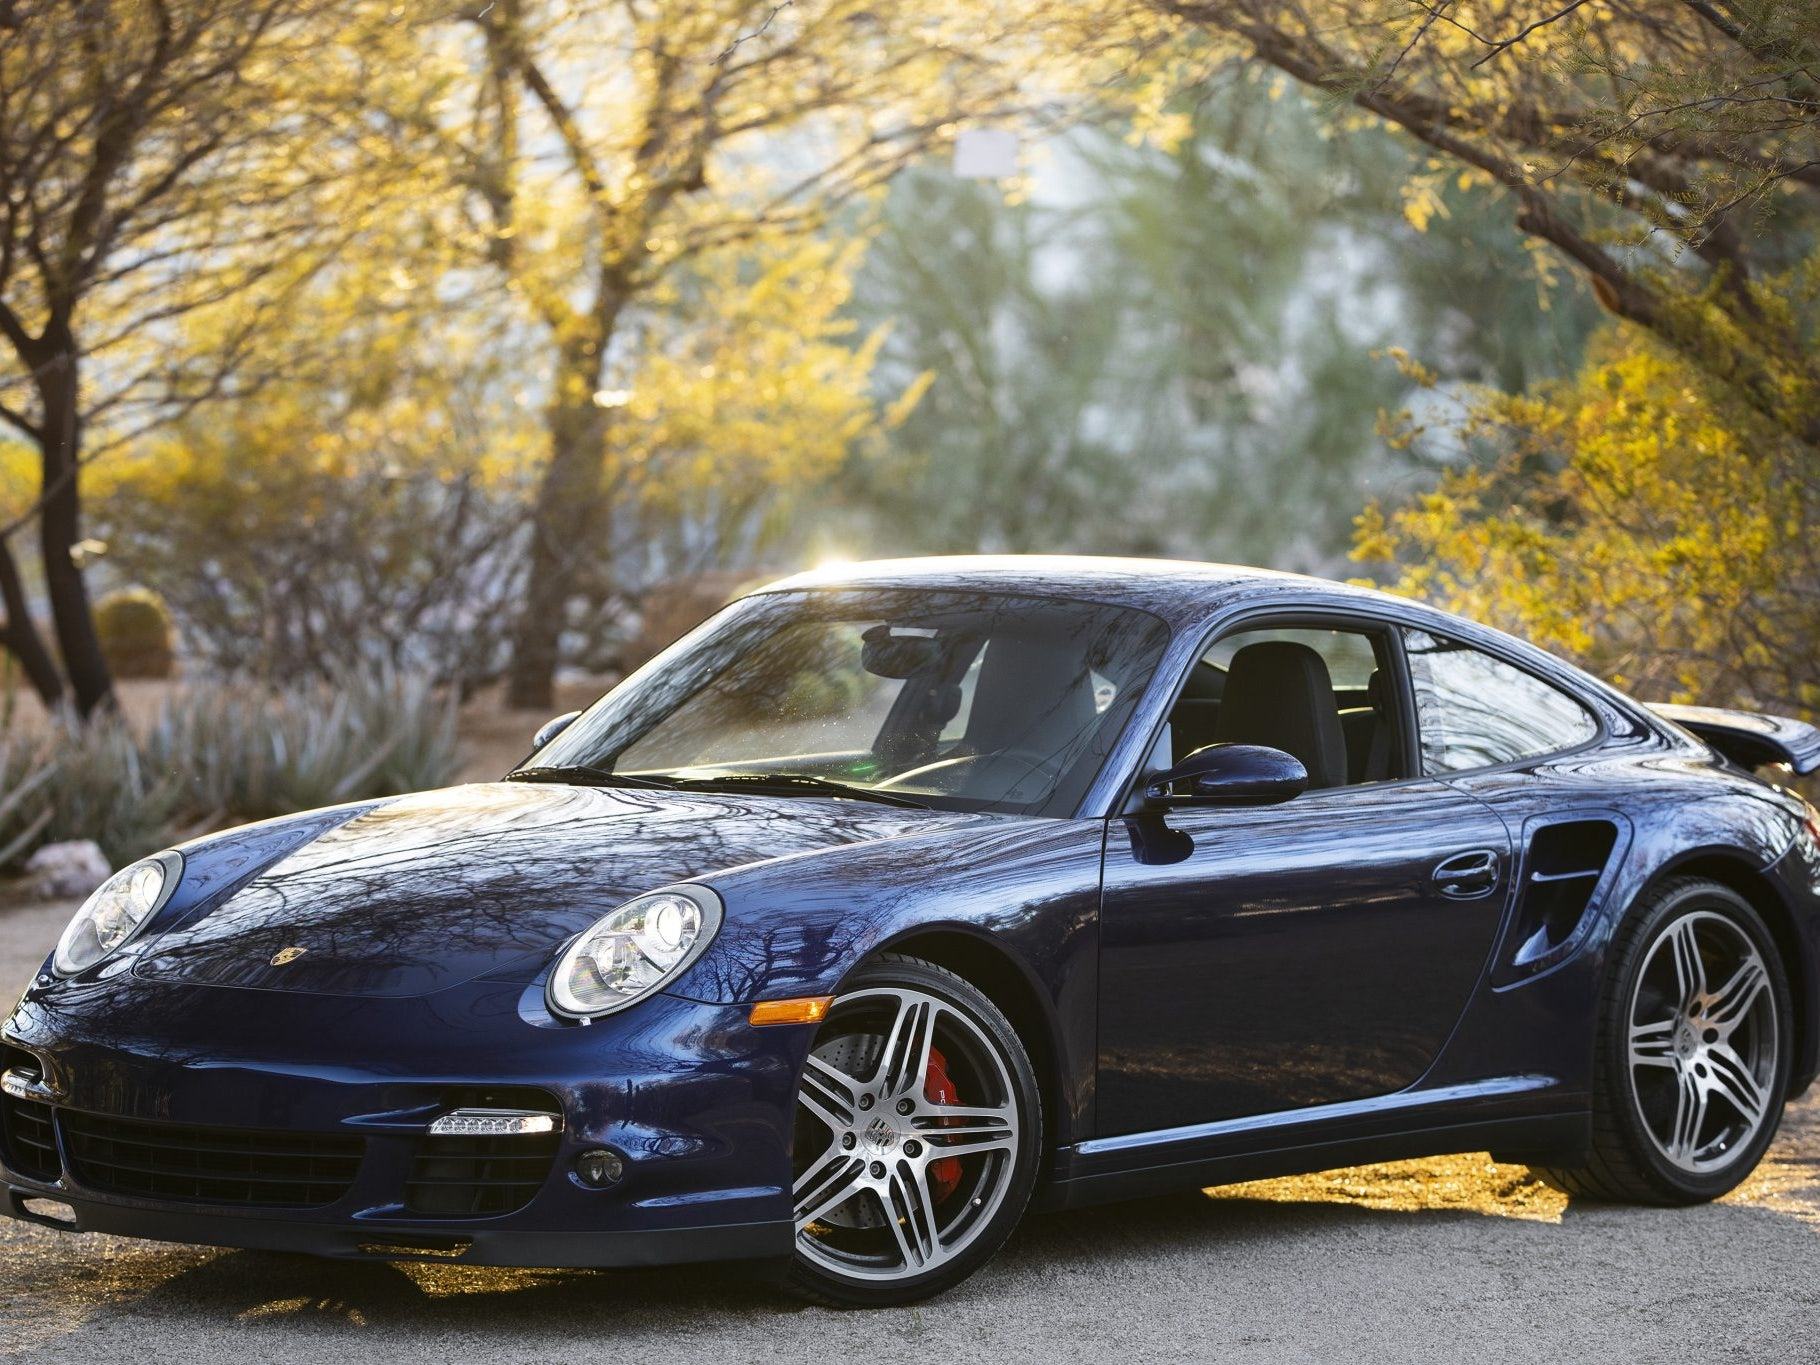 2007 Porsche 911 Turbo Coupe 6-Speed